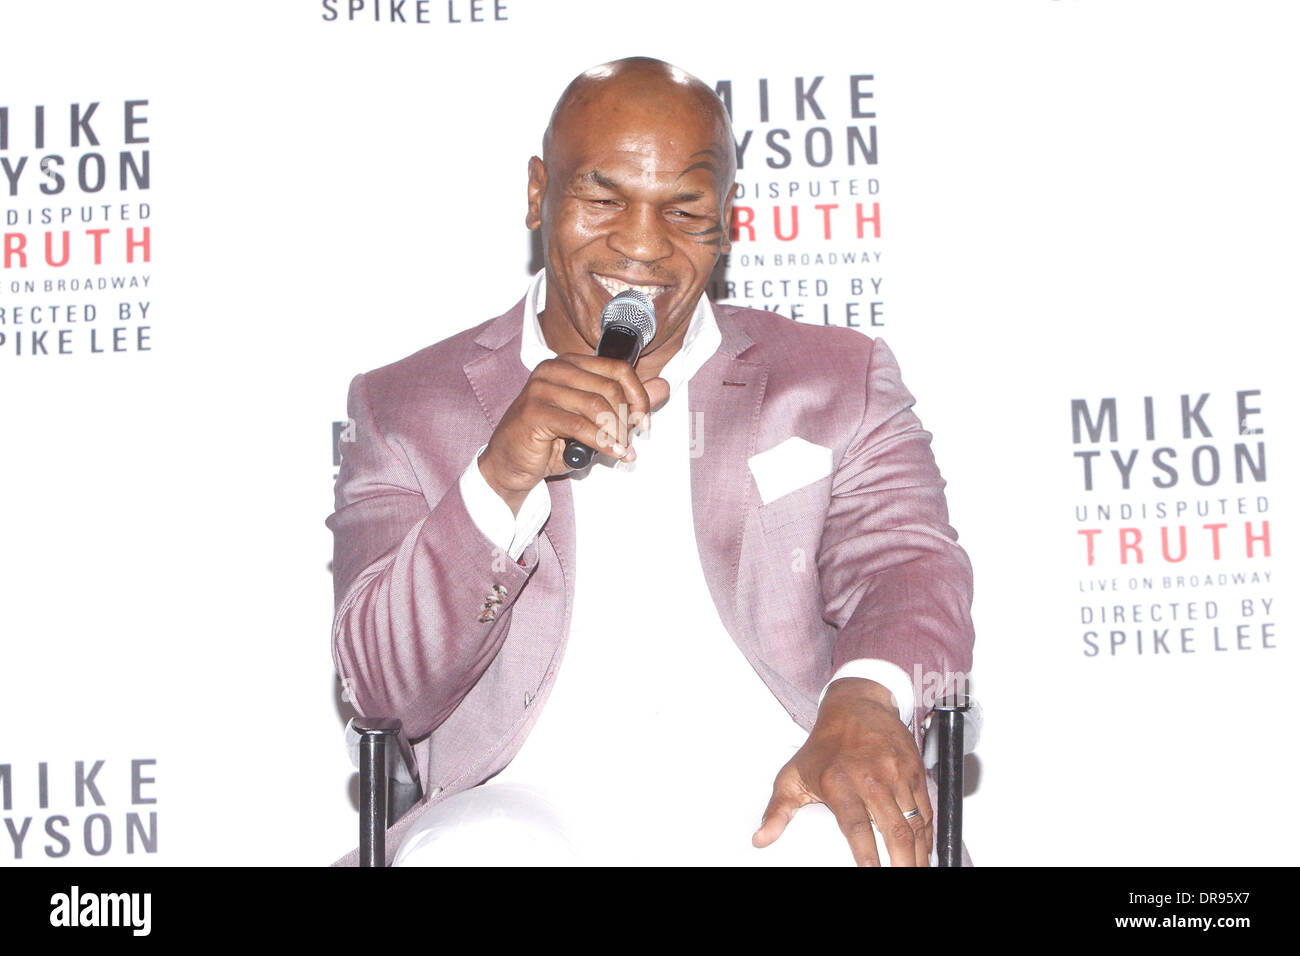 mike tyson undisputed truth epub download